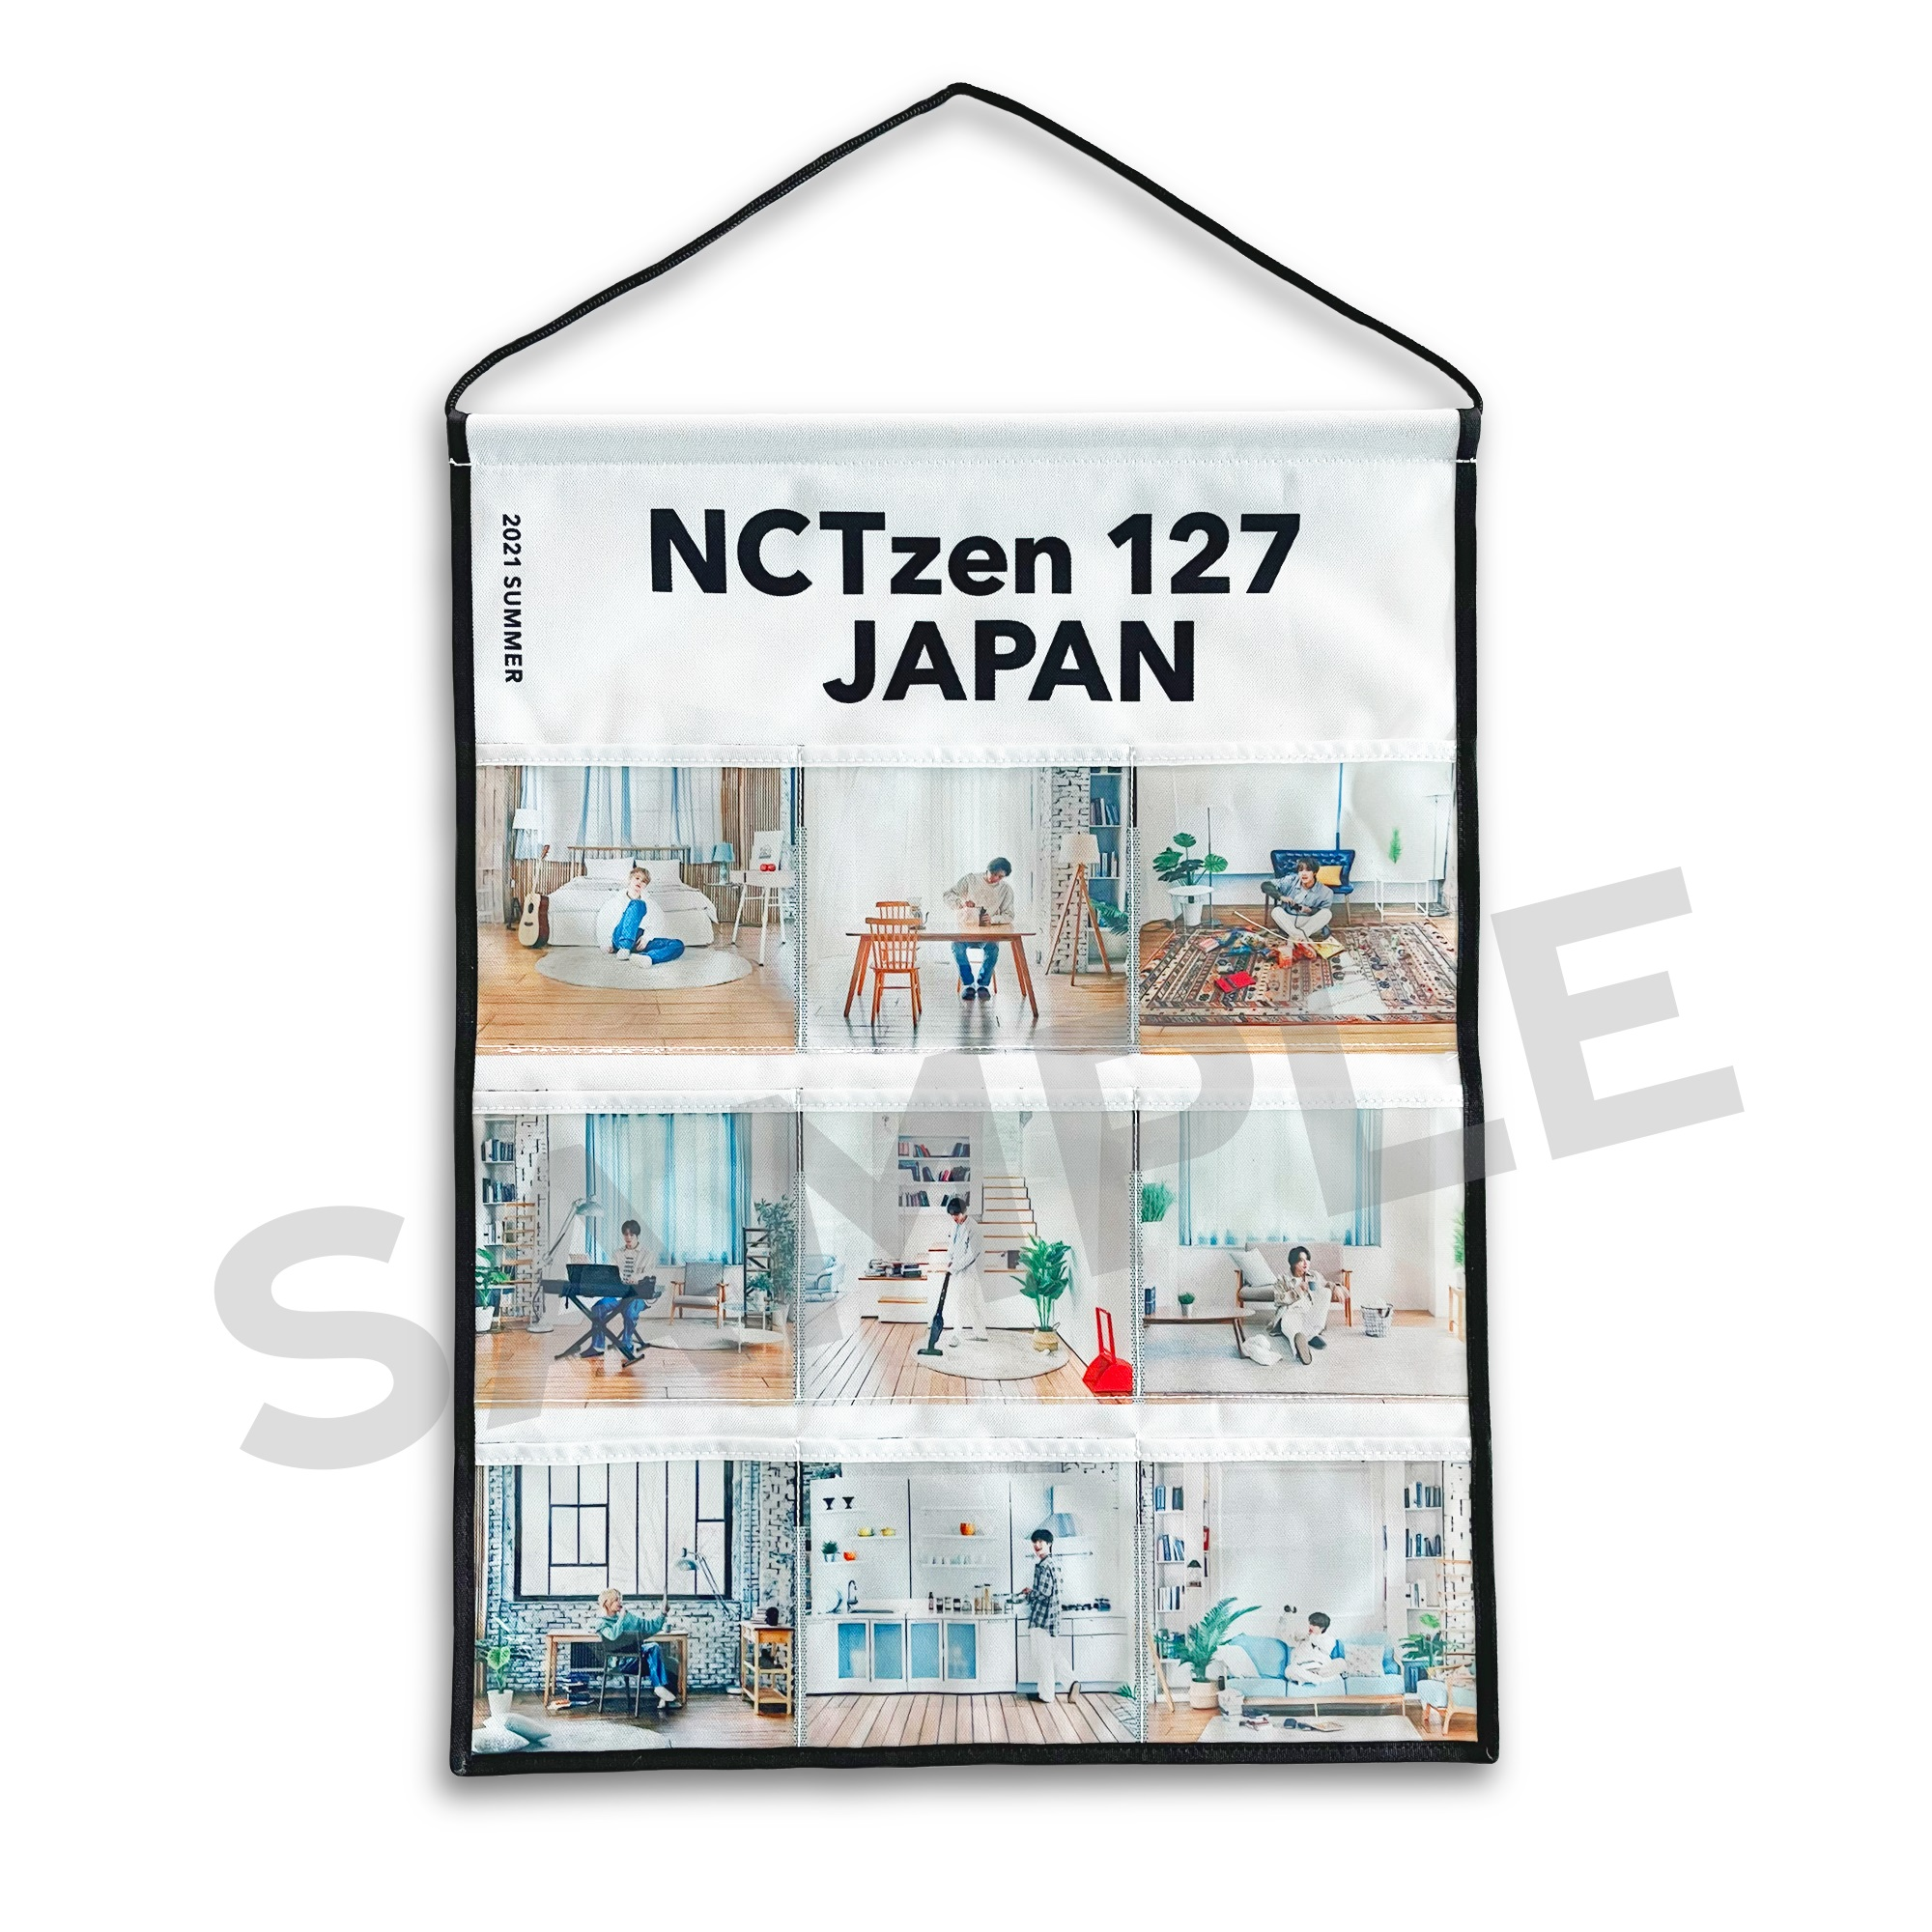 【NCT 127】『NCT 127 OFFICIAL BOOK Vol.4』グッズを、メンバー別に詳しく紹介!_13